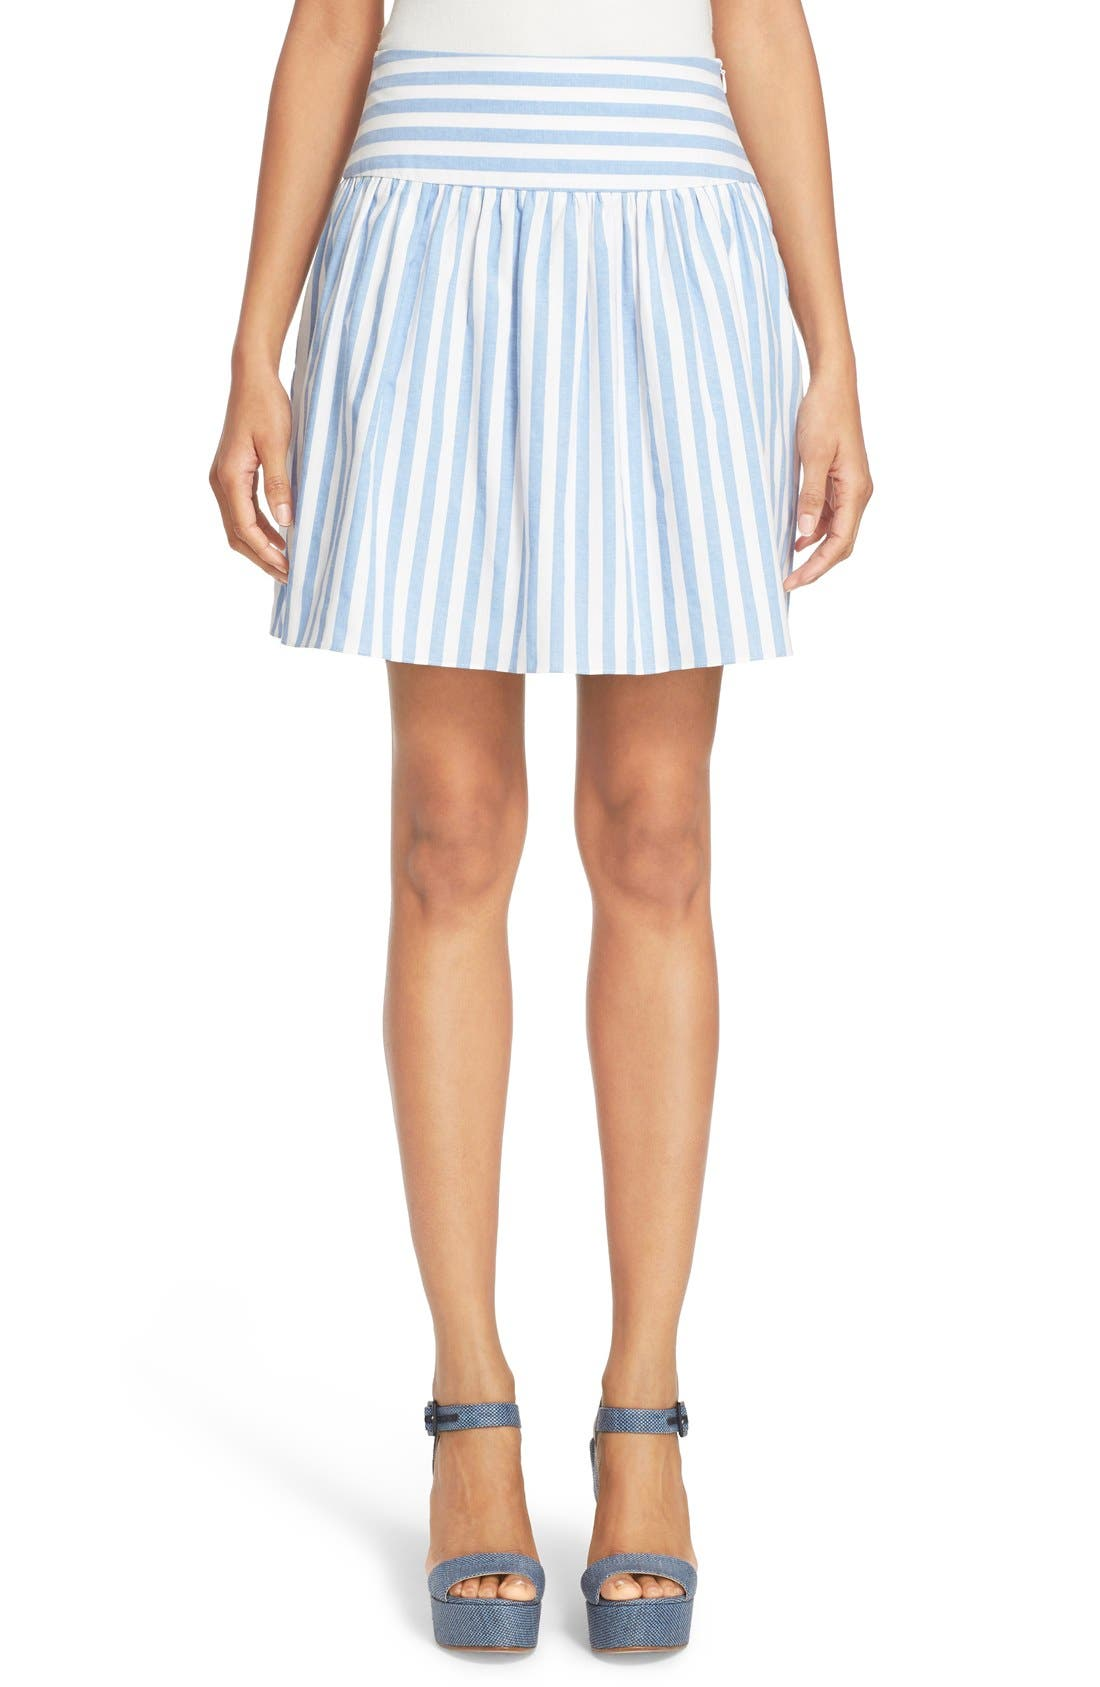 Alternate Image 1 Selected - Milly Breton Stripe A-Line Skirt